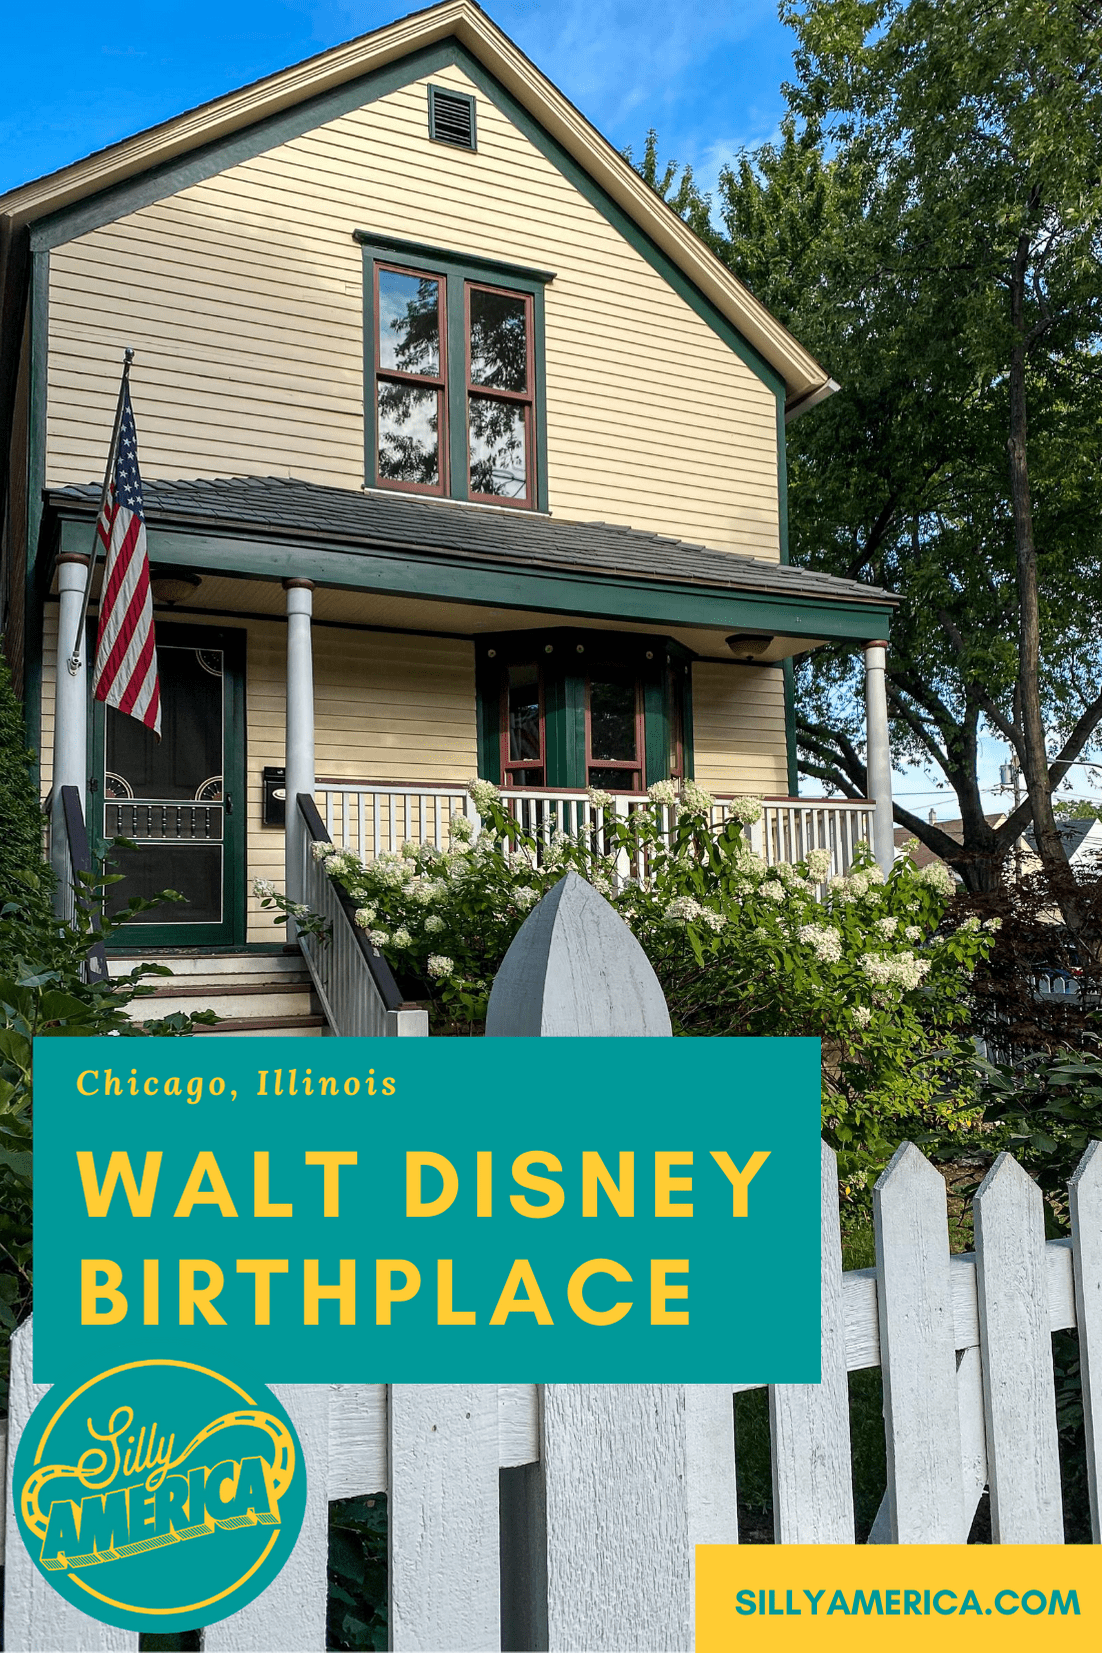 The Walt Disney Birthplace is in Chicago, Illinois. Walt Disney, the animator, voice actor, writer, and film producer who was an animation superstar and created the Disney empire. His father, Elias Disney‍, built this house and, on December 5, 1901, Walter Elias Disney was born there. He spent his early childhood living in that house before the family moved to a farm in Marceline, Missouri, when he was four years old. #Disney #WaltDisney #ChicagoRoadsideAttraction #IllinoisRoadsideAttractions